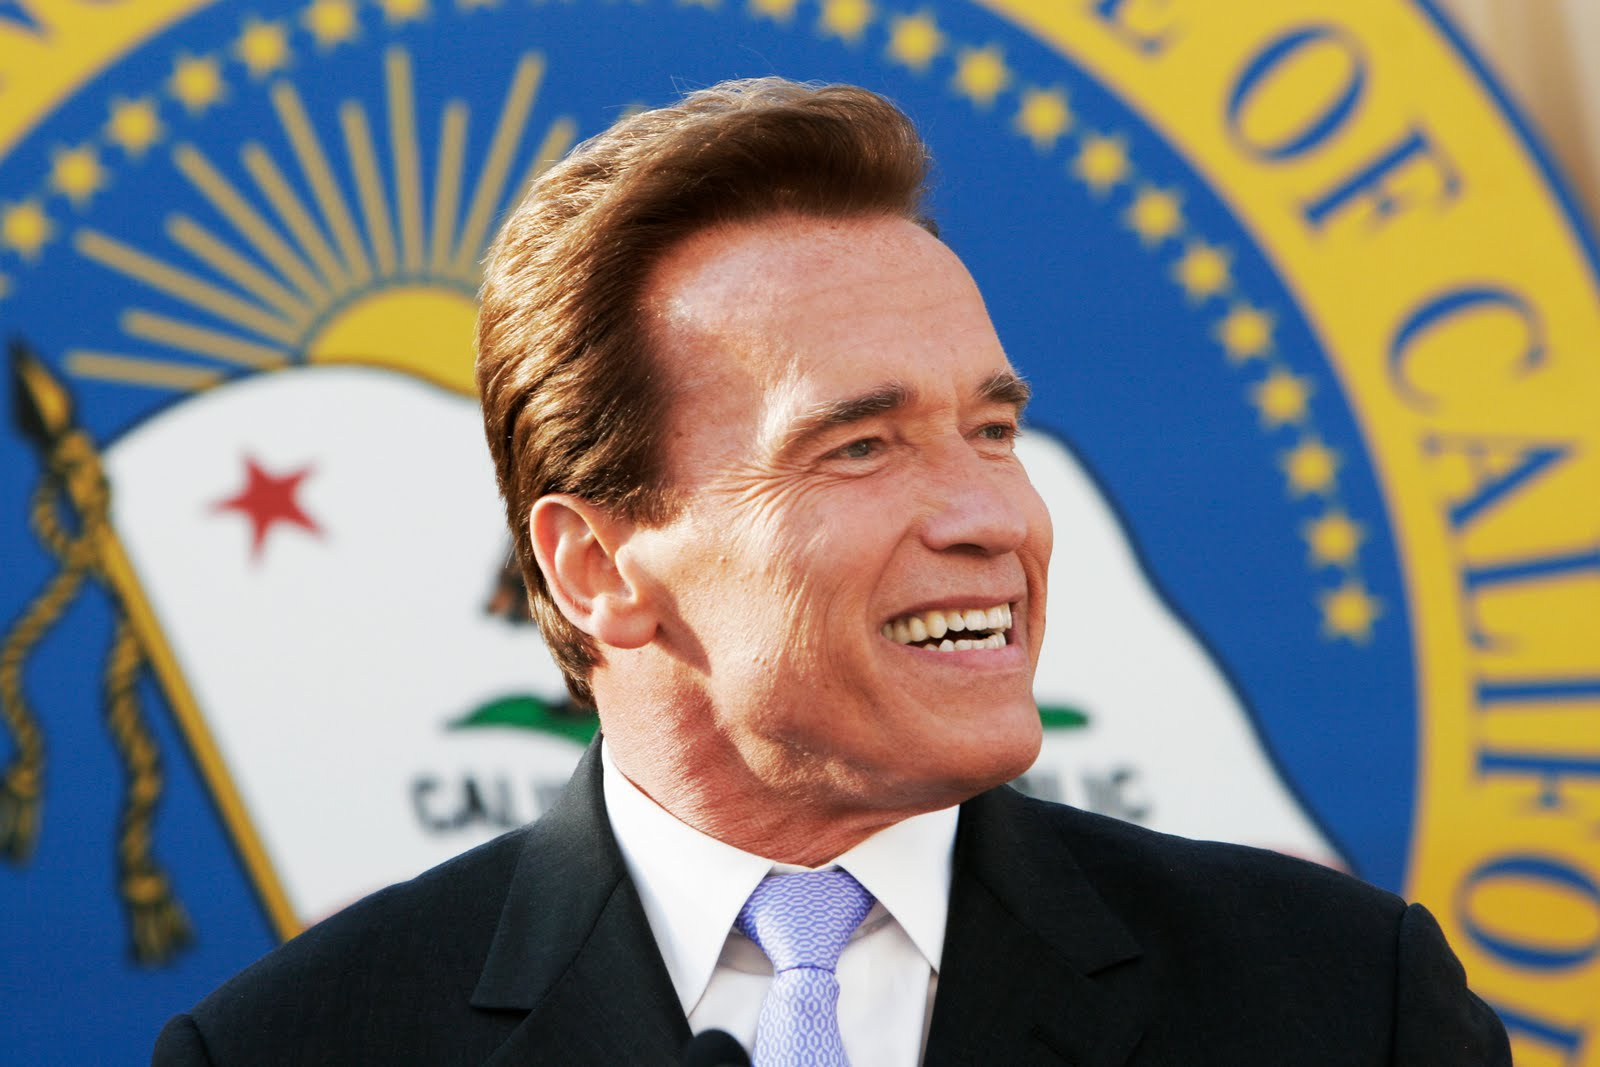 Arnold Schwarzenegger Some amateur vid footage of the fight: